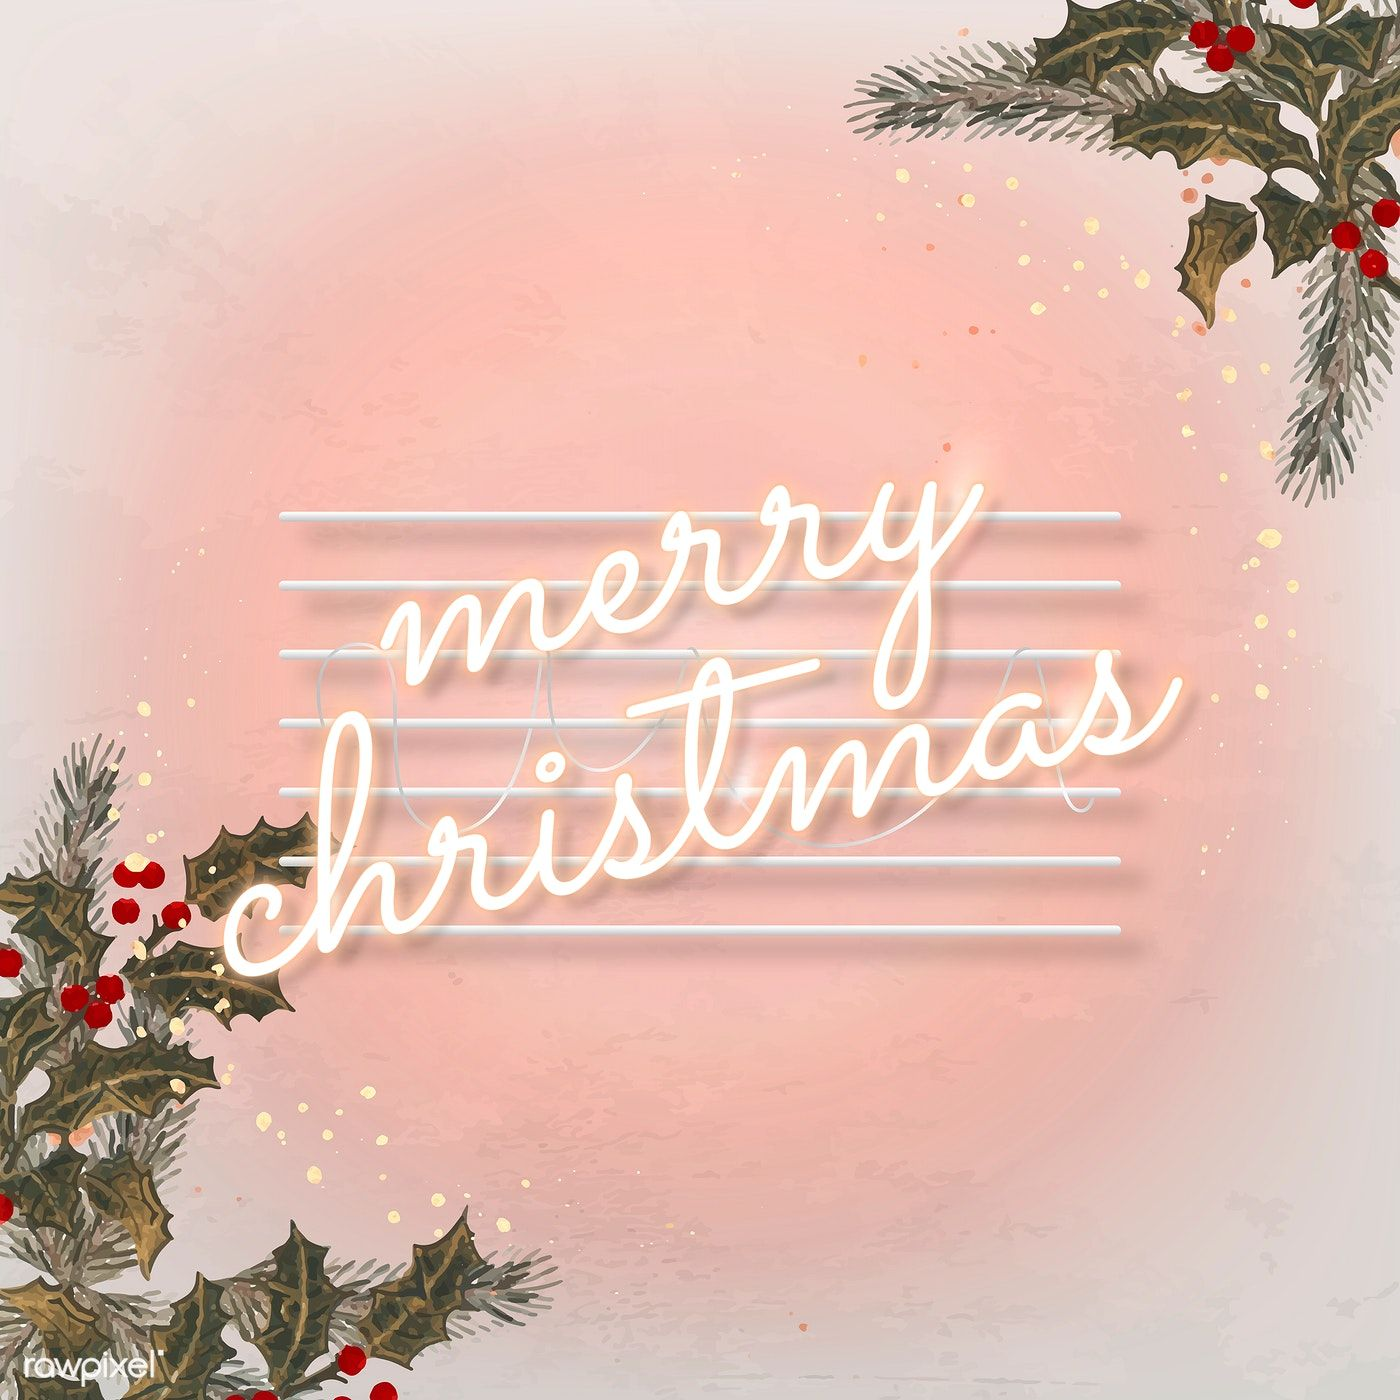 Download Premium Vector Of Pink Neon Text With Mistletoes Social Ads Christmas Card Images Xmas Wallpaper Christmas Templates